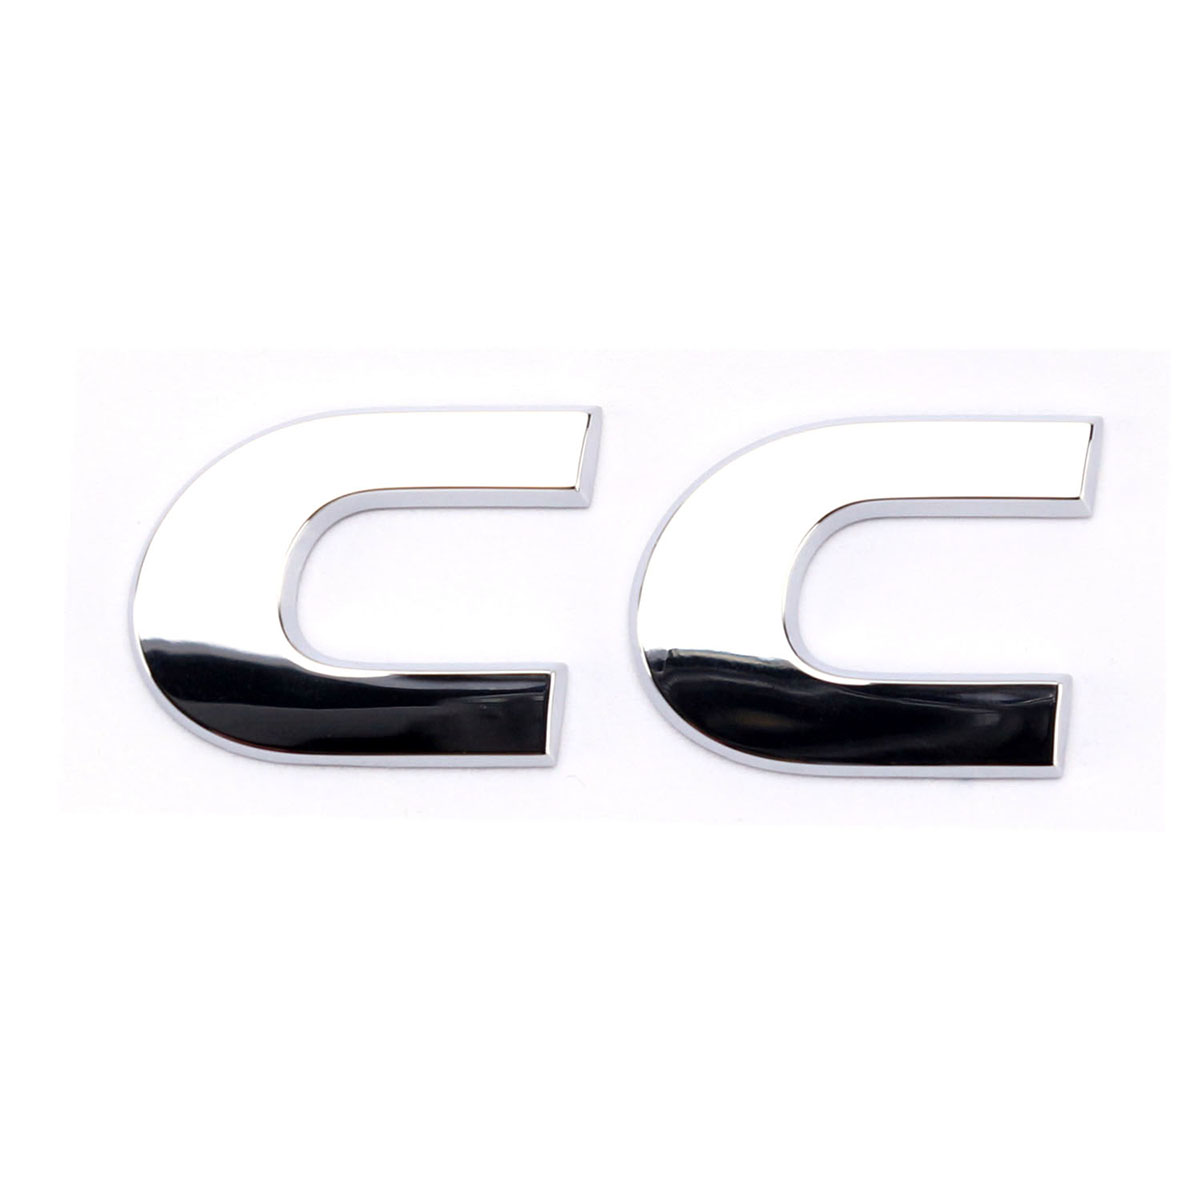 OEM Silver Chrome Rear Trunk Lid Emblem Sticker Decal Badge CC for VW Volkswagen Passat CC soarhorse for ford kuga chrome abs decal car rear trunk lid letters badge logo emblem sticker